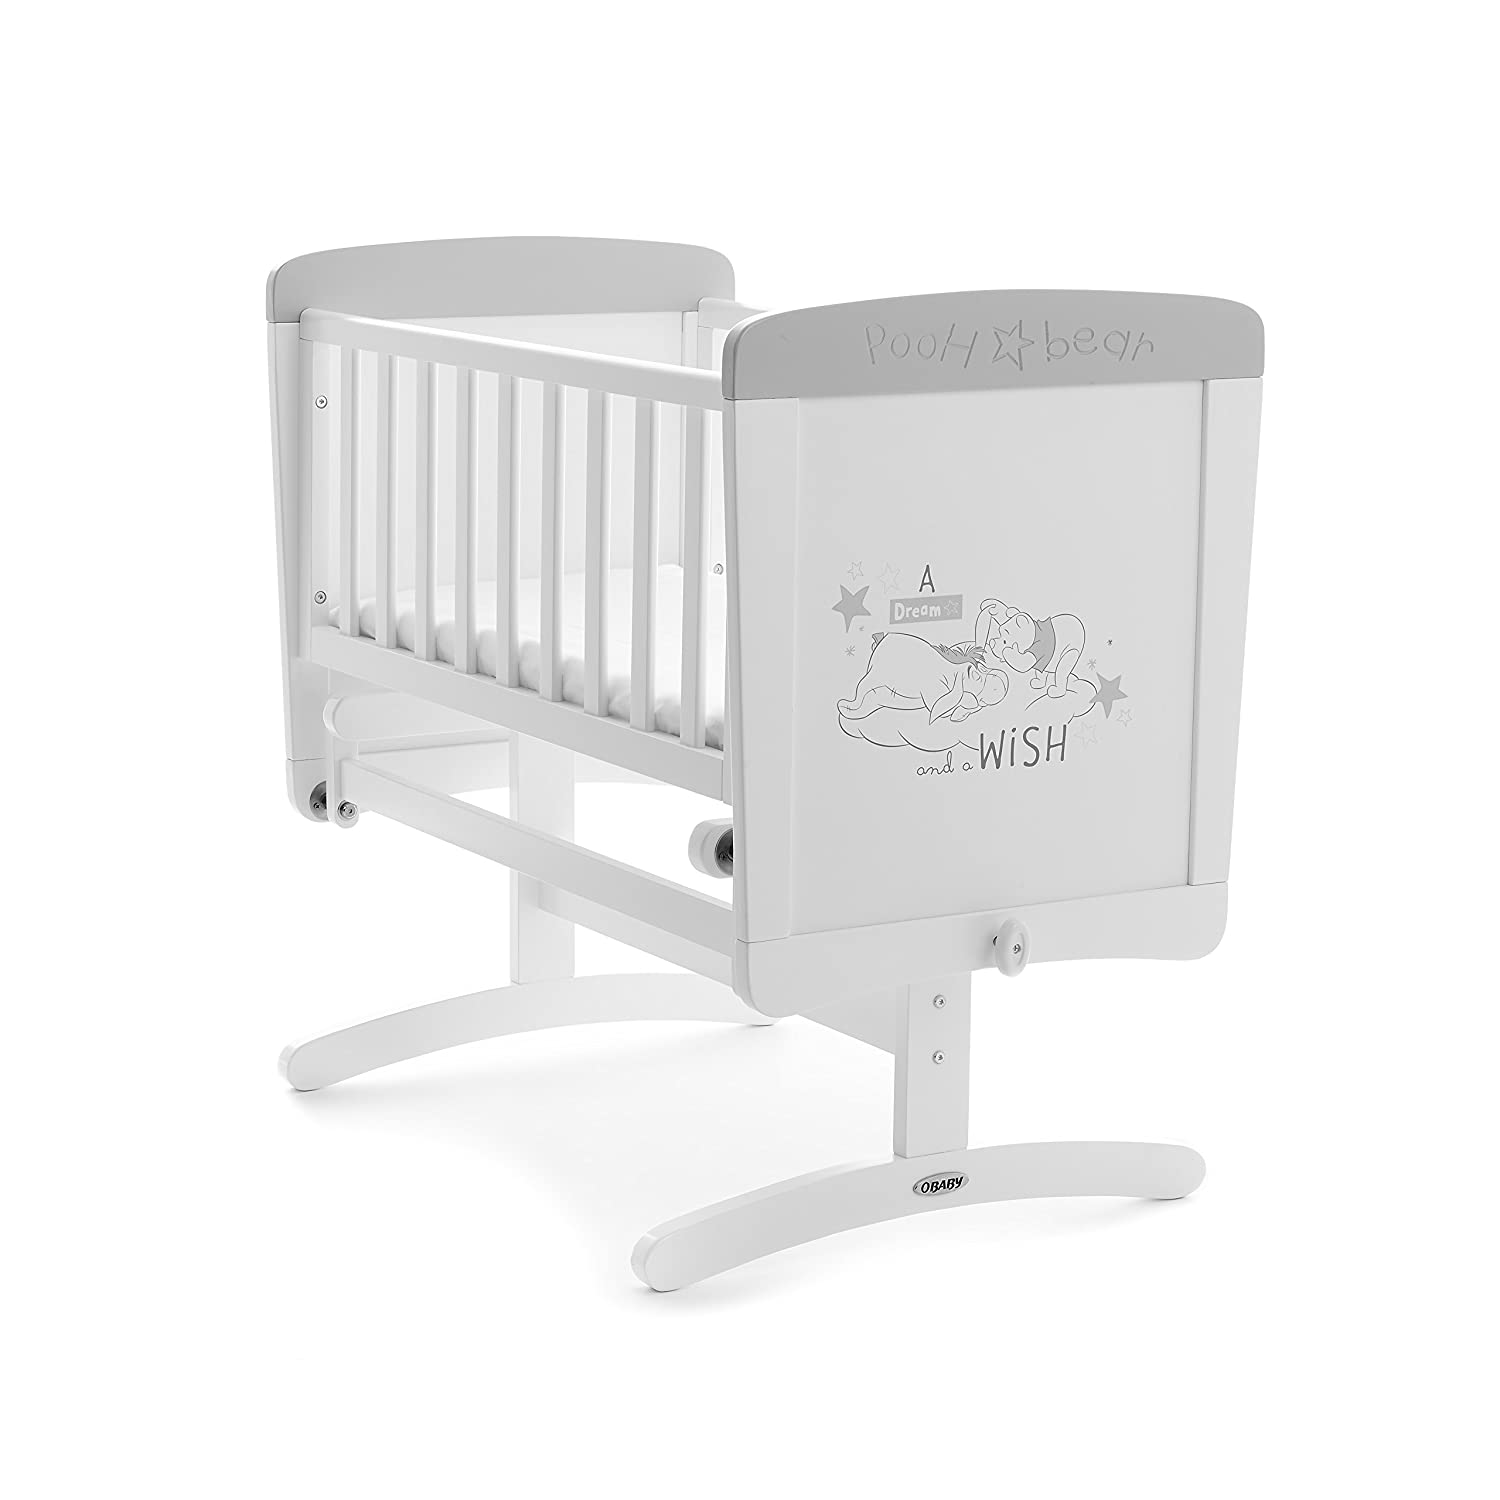 Disney Winnie the Pooh Gliding Crib and Mattress, Dreams & Wishes Kims Baby Equipment Co Ltd 22DB0507MA